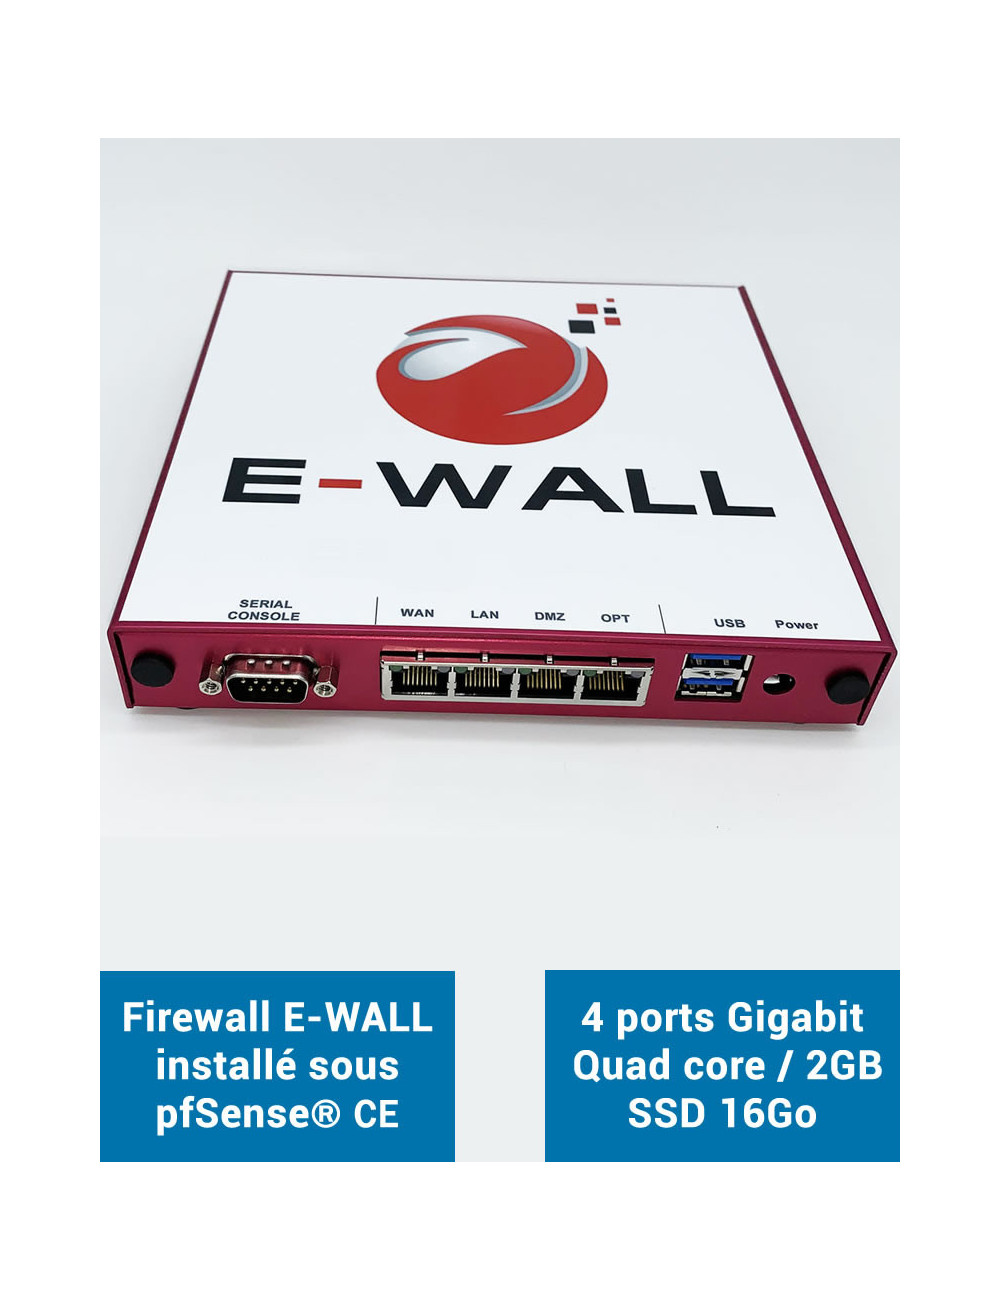 Firewall E-WALL AP442 under pfSense® CE 4 ports 2GB SSD 16GB